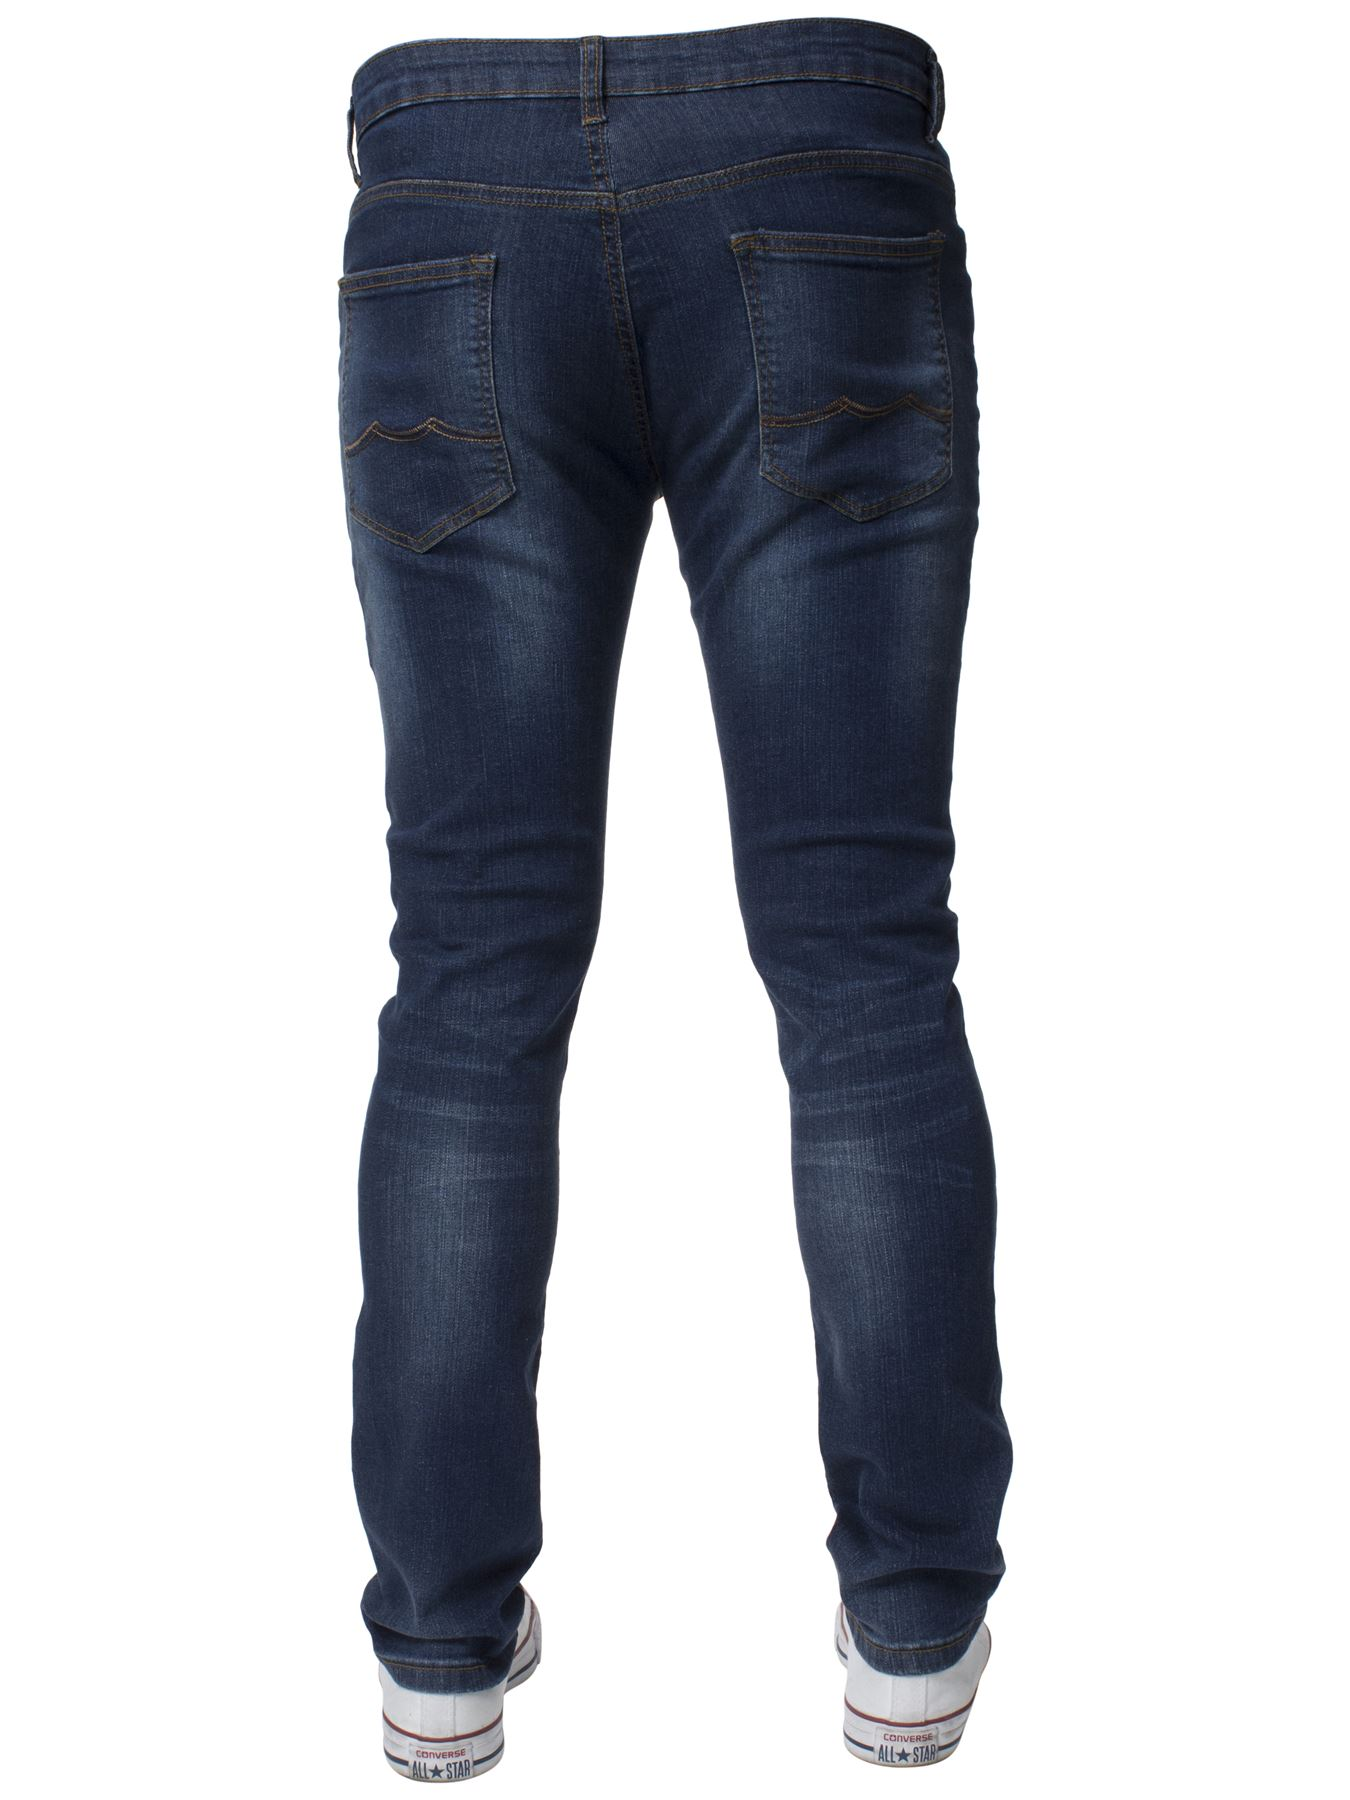 Mens-Skinny-Stretch-Jeans-Slim-Fit-Flex-Denim-Trousers-Pants-King-Sizes-by-Kruze thumbnail 12